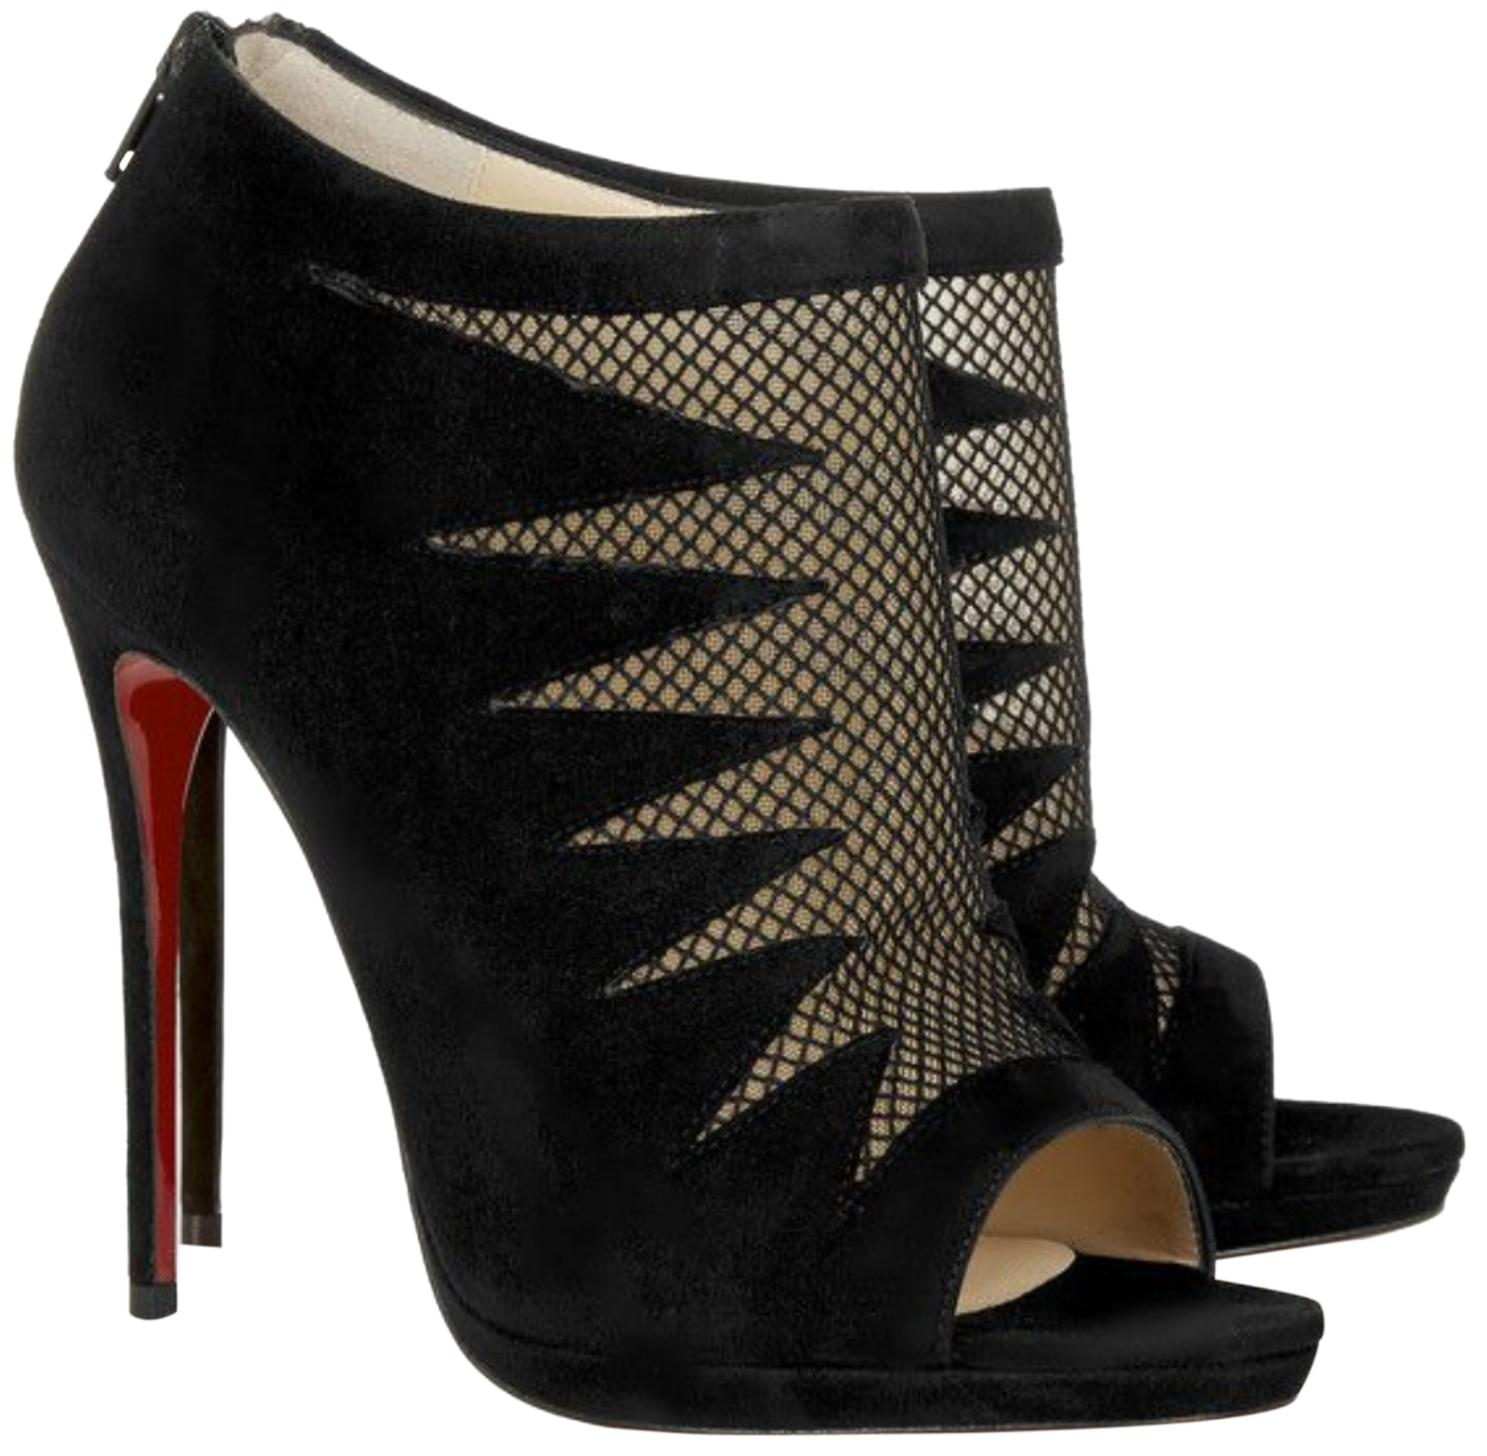 440790ede3fa ... ebay christian louboutin shoes up to 70 off at tradesy 7a91e 65d7c